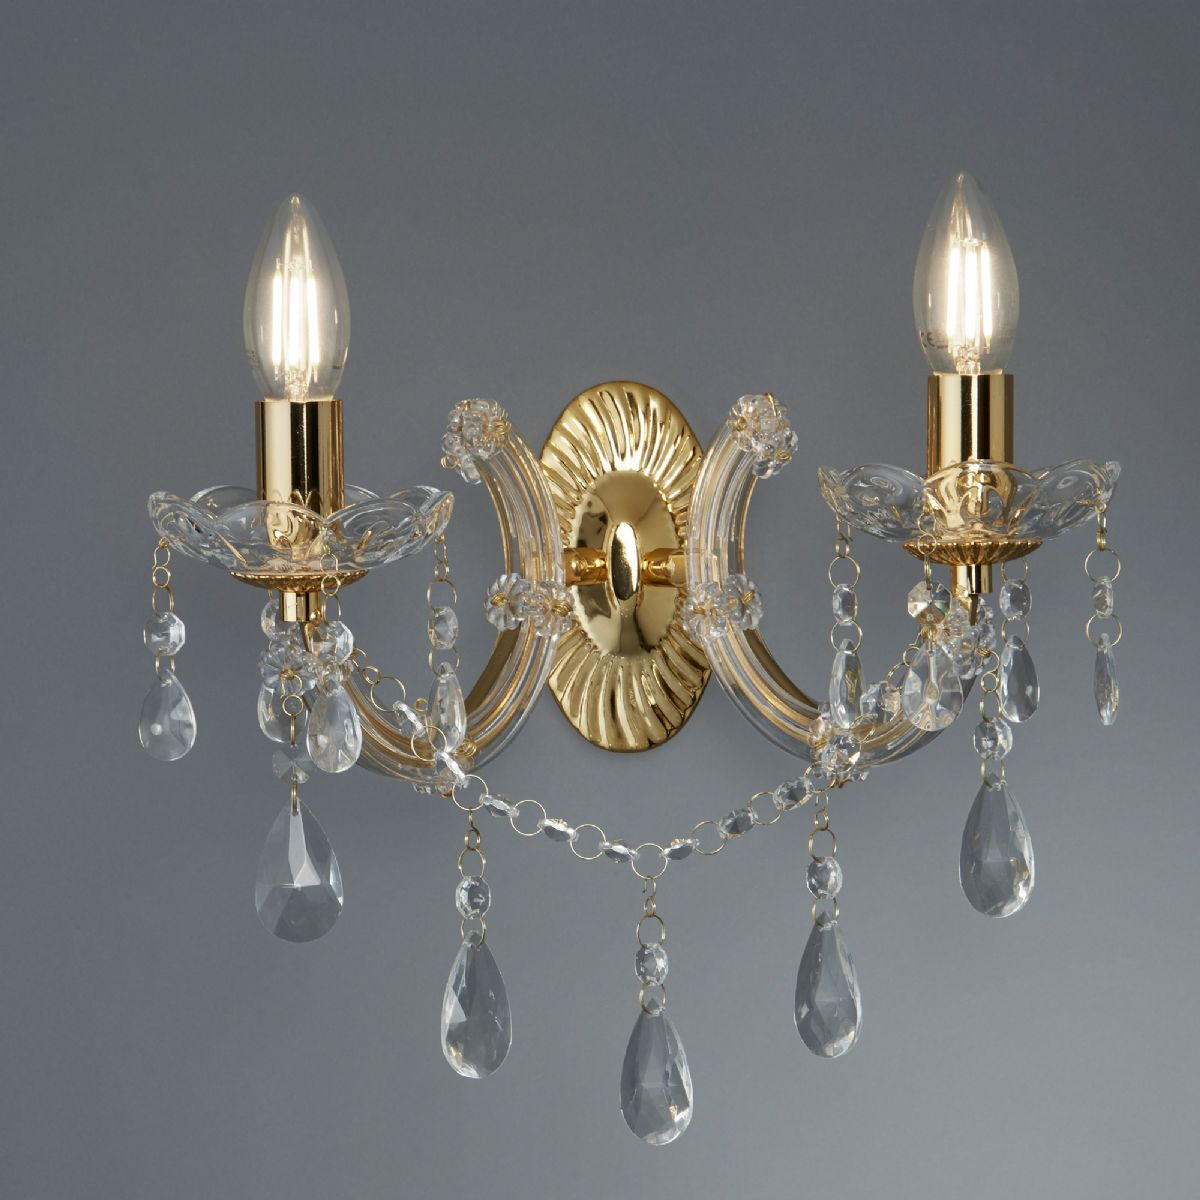 Marie Therese Wall Lights Chrome : Searchlight Marie Therese wall light 399-2 699-2